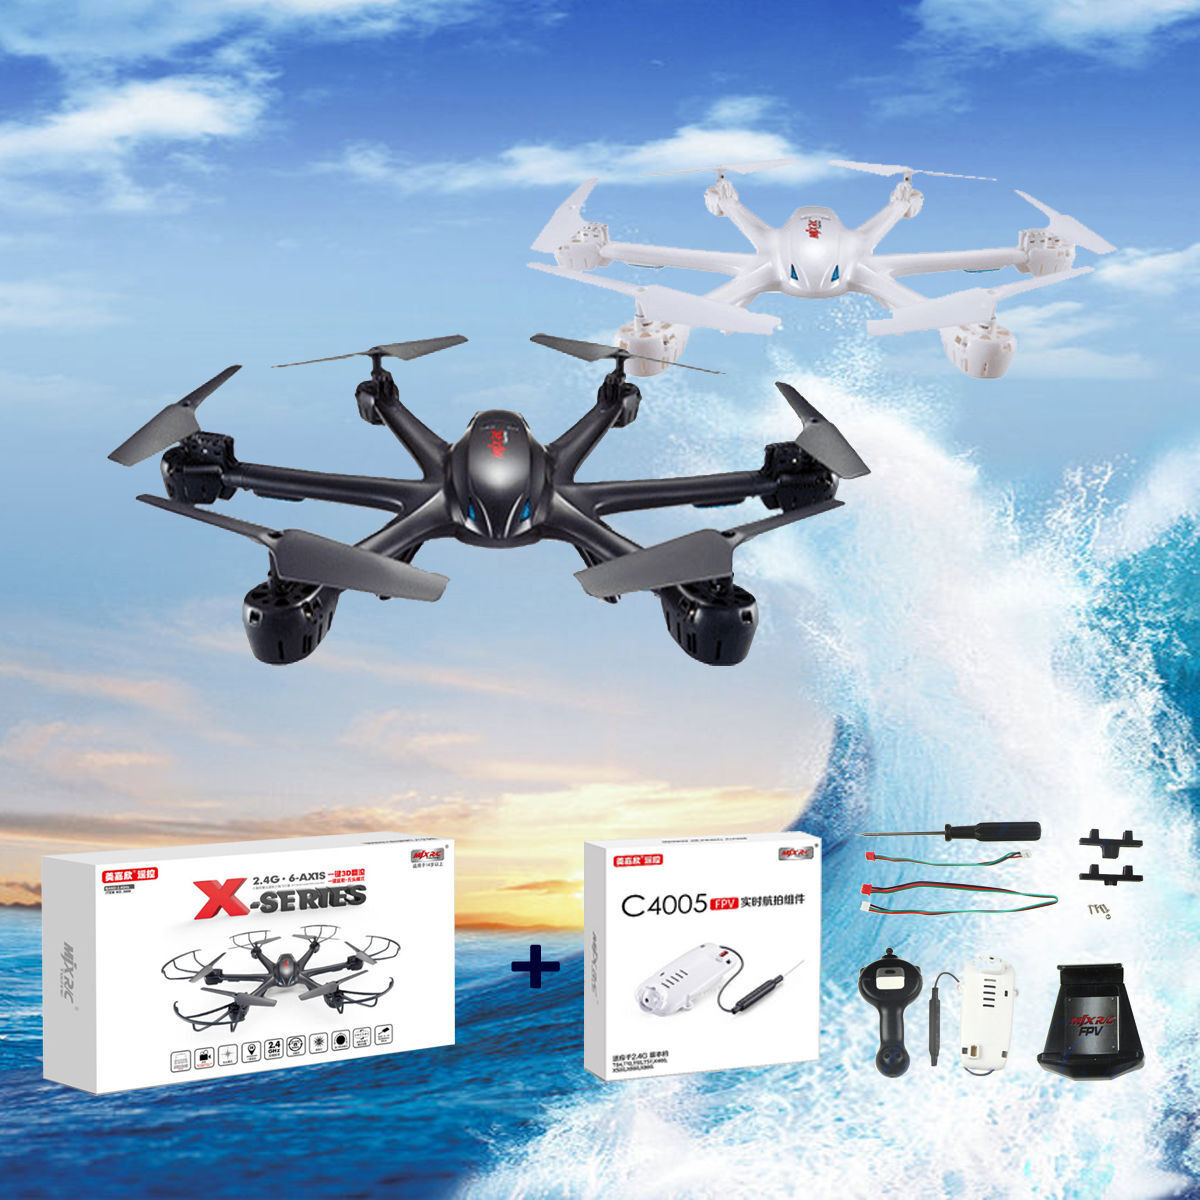 Cool X600 Series 2.4G Quadcopter Drone Hexacopter 6 Axis Gyro 3D Roll Airplanes